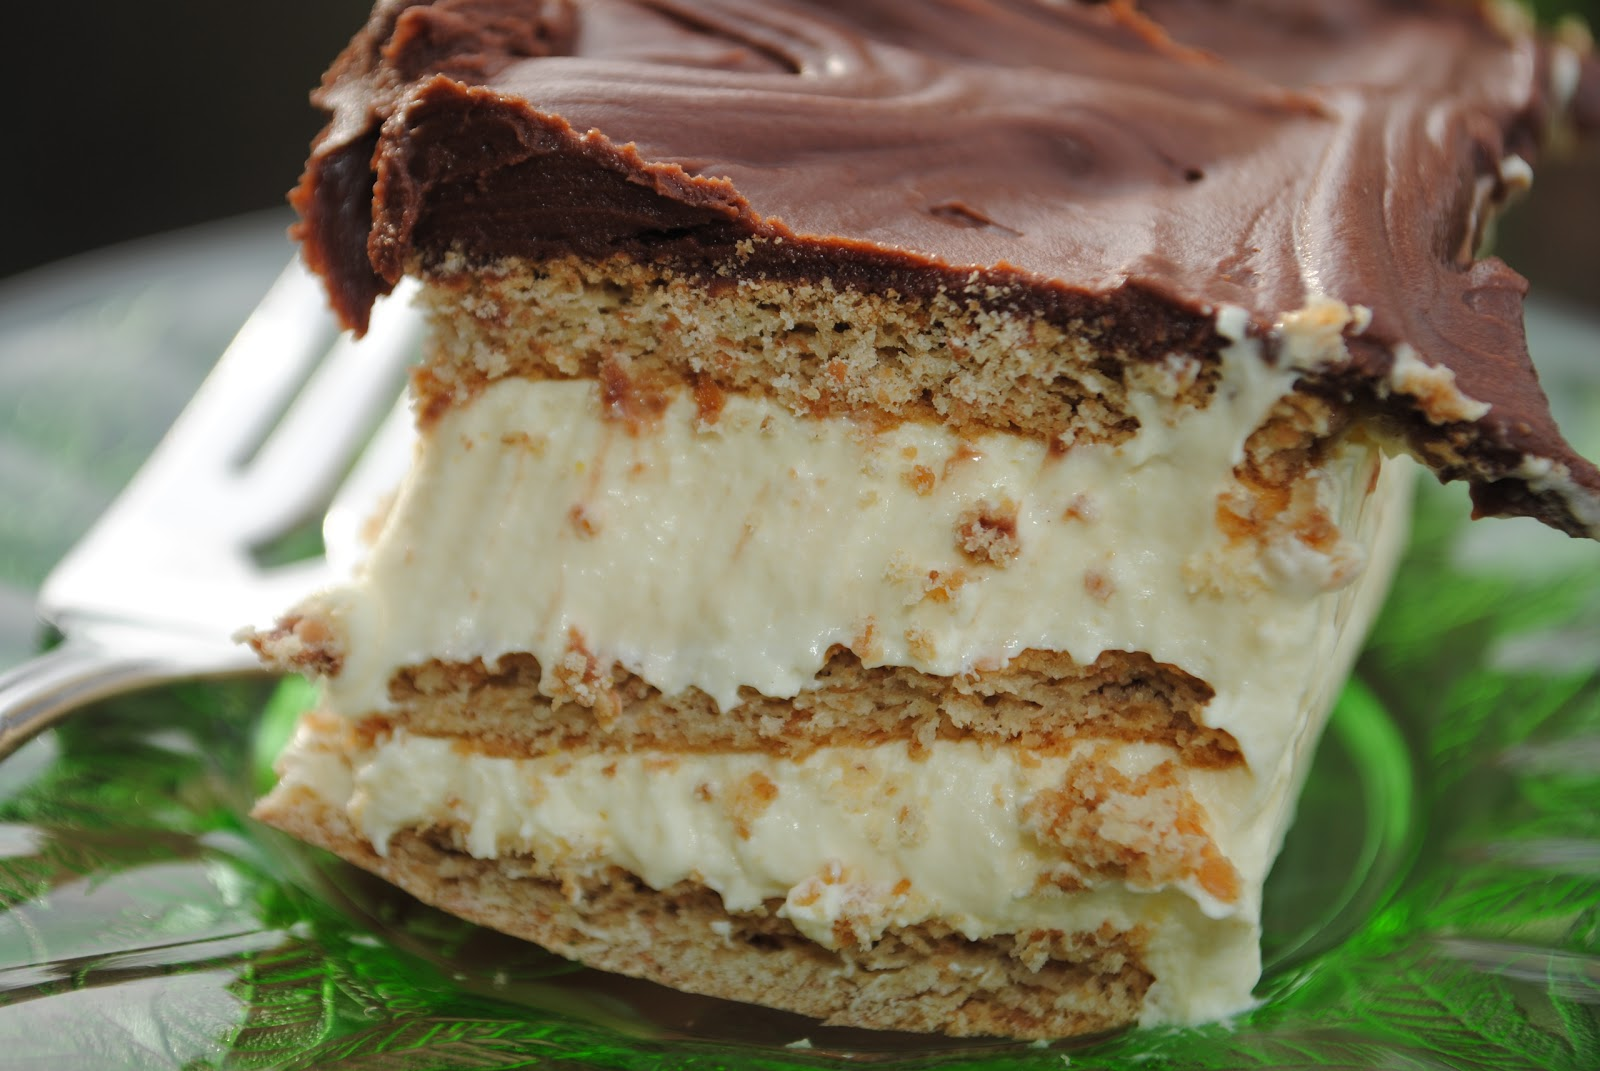 Chocolate Eclair Cake from www.shugarysweets.com